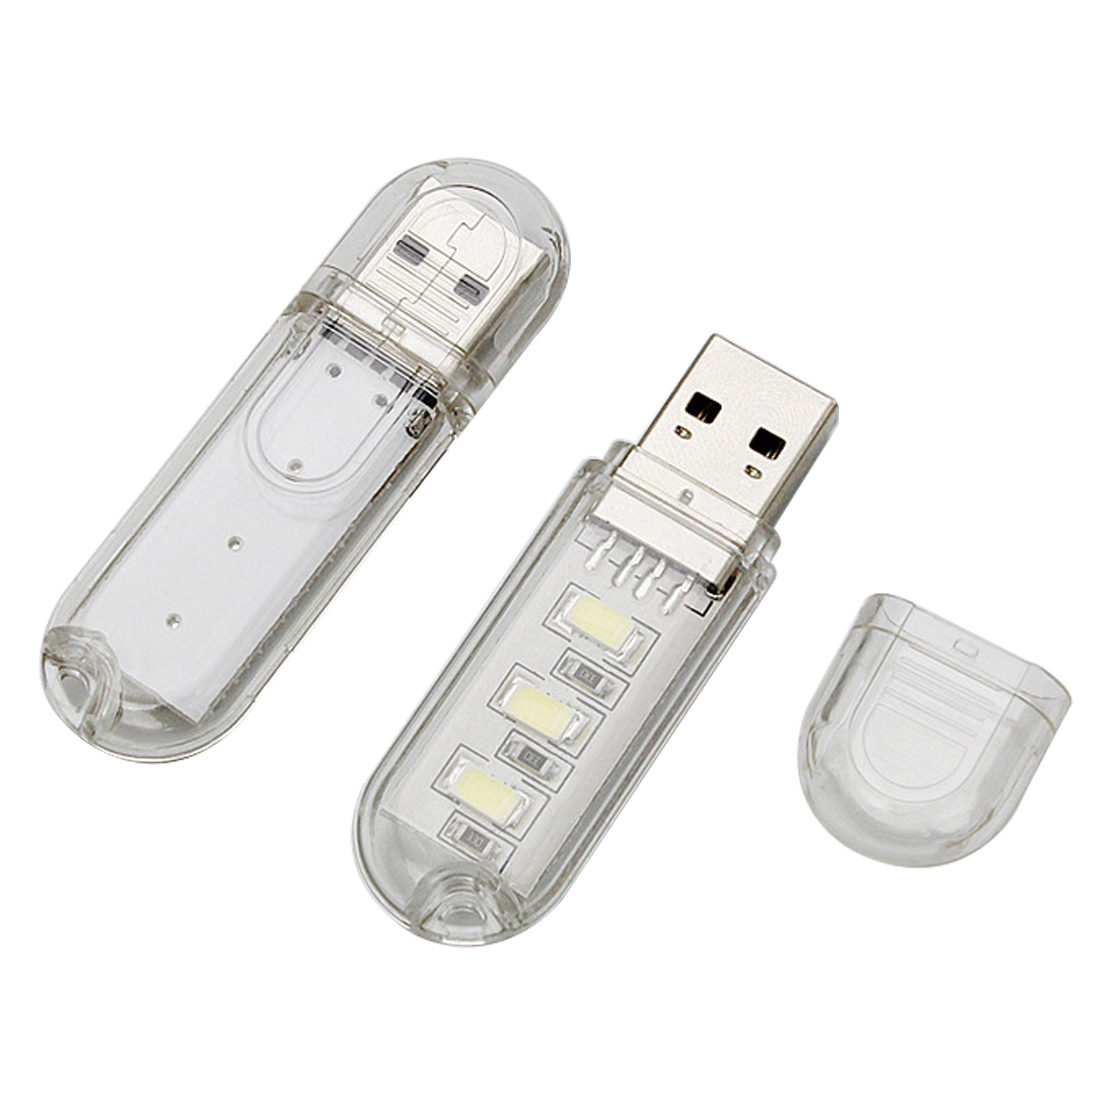 2Pcs Mini White LED Night Light Pocket Card Lamp Led Keychain Portable USB t9